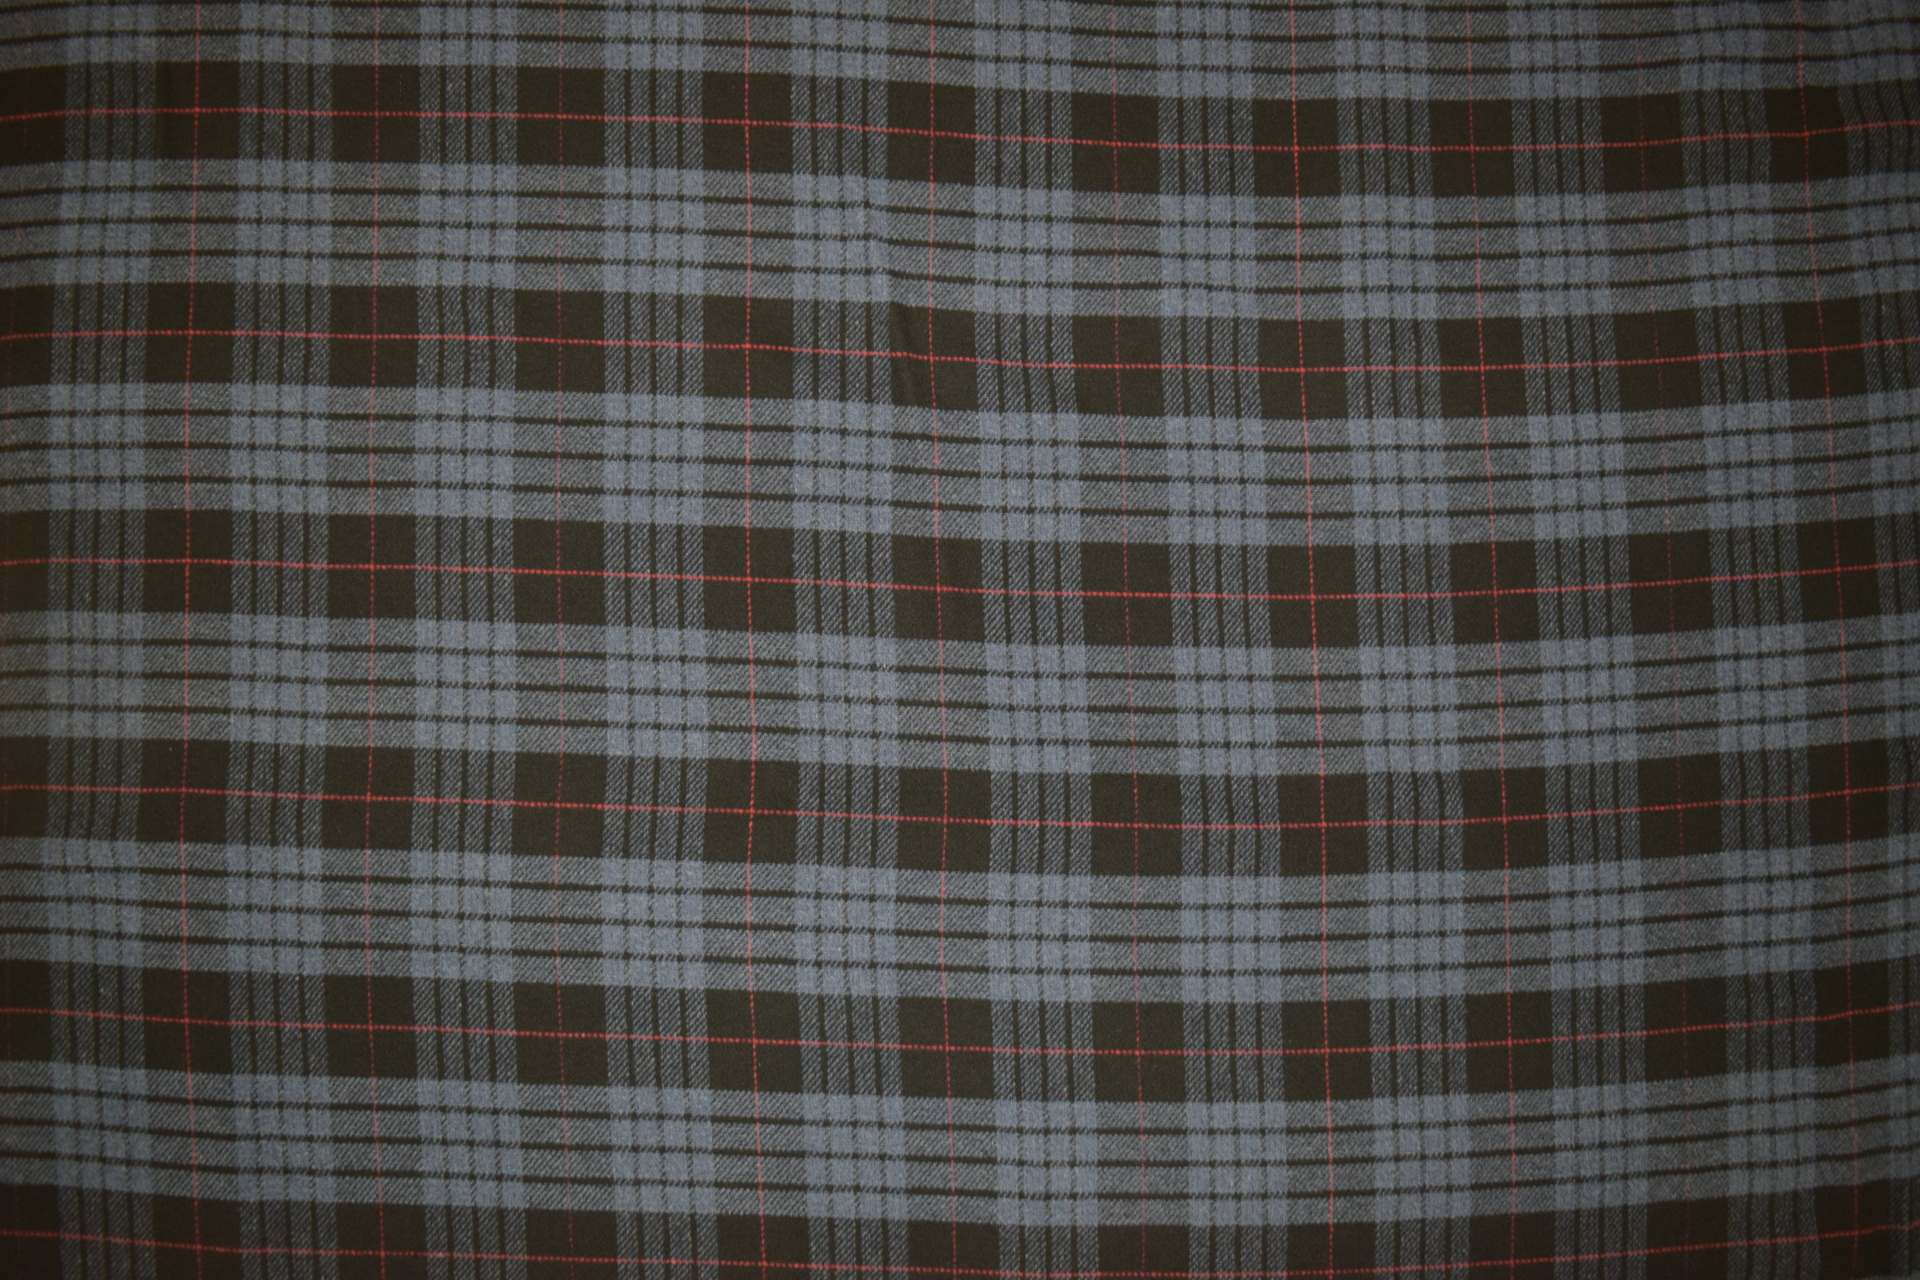 "TPB - BLUE TARTAN PLAID B.S. THROW - 60"" w x 72"" long - $119.95 -- SALE $79.95"